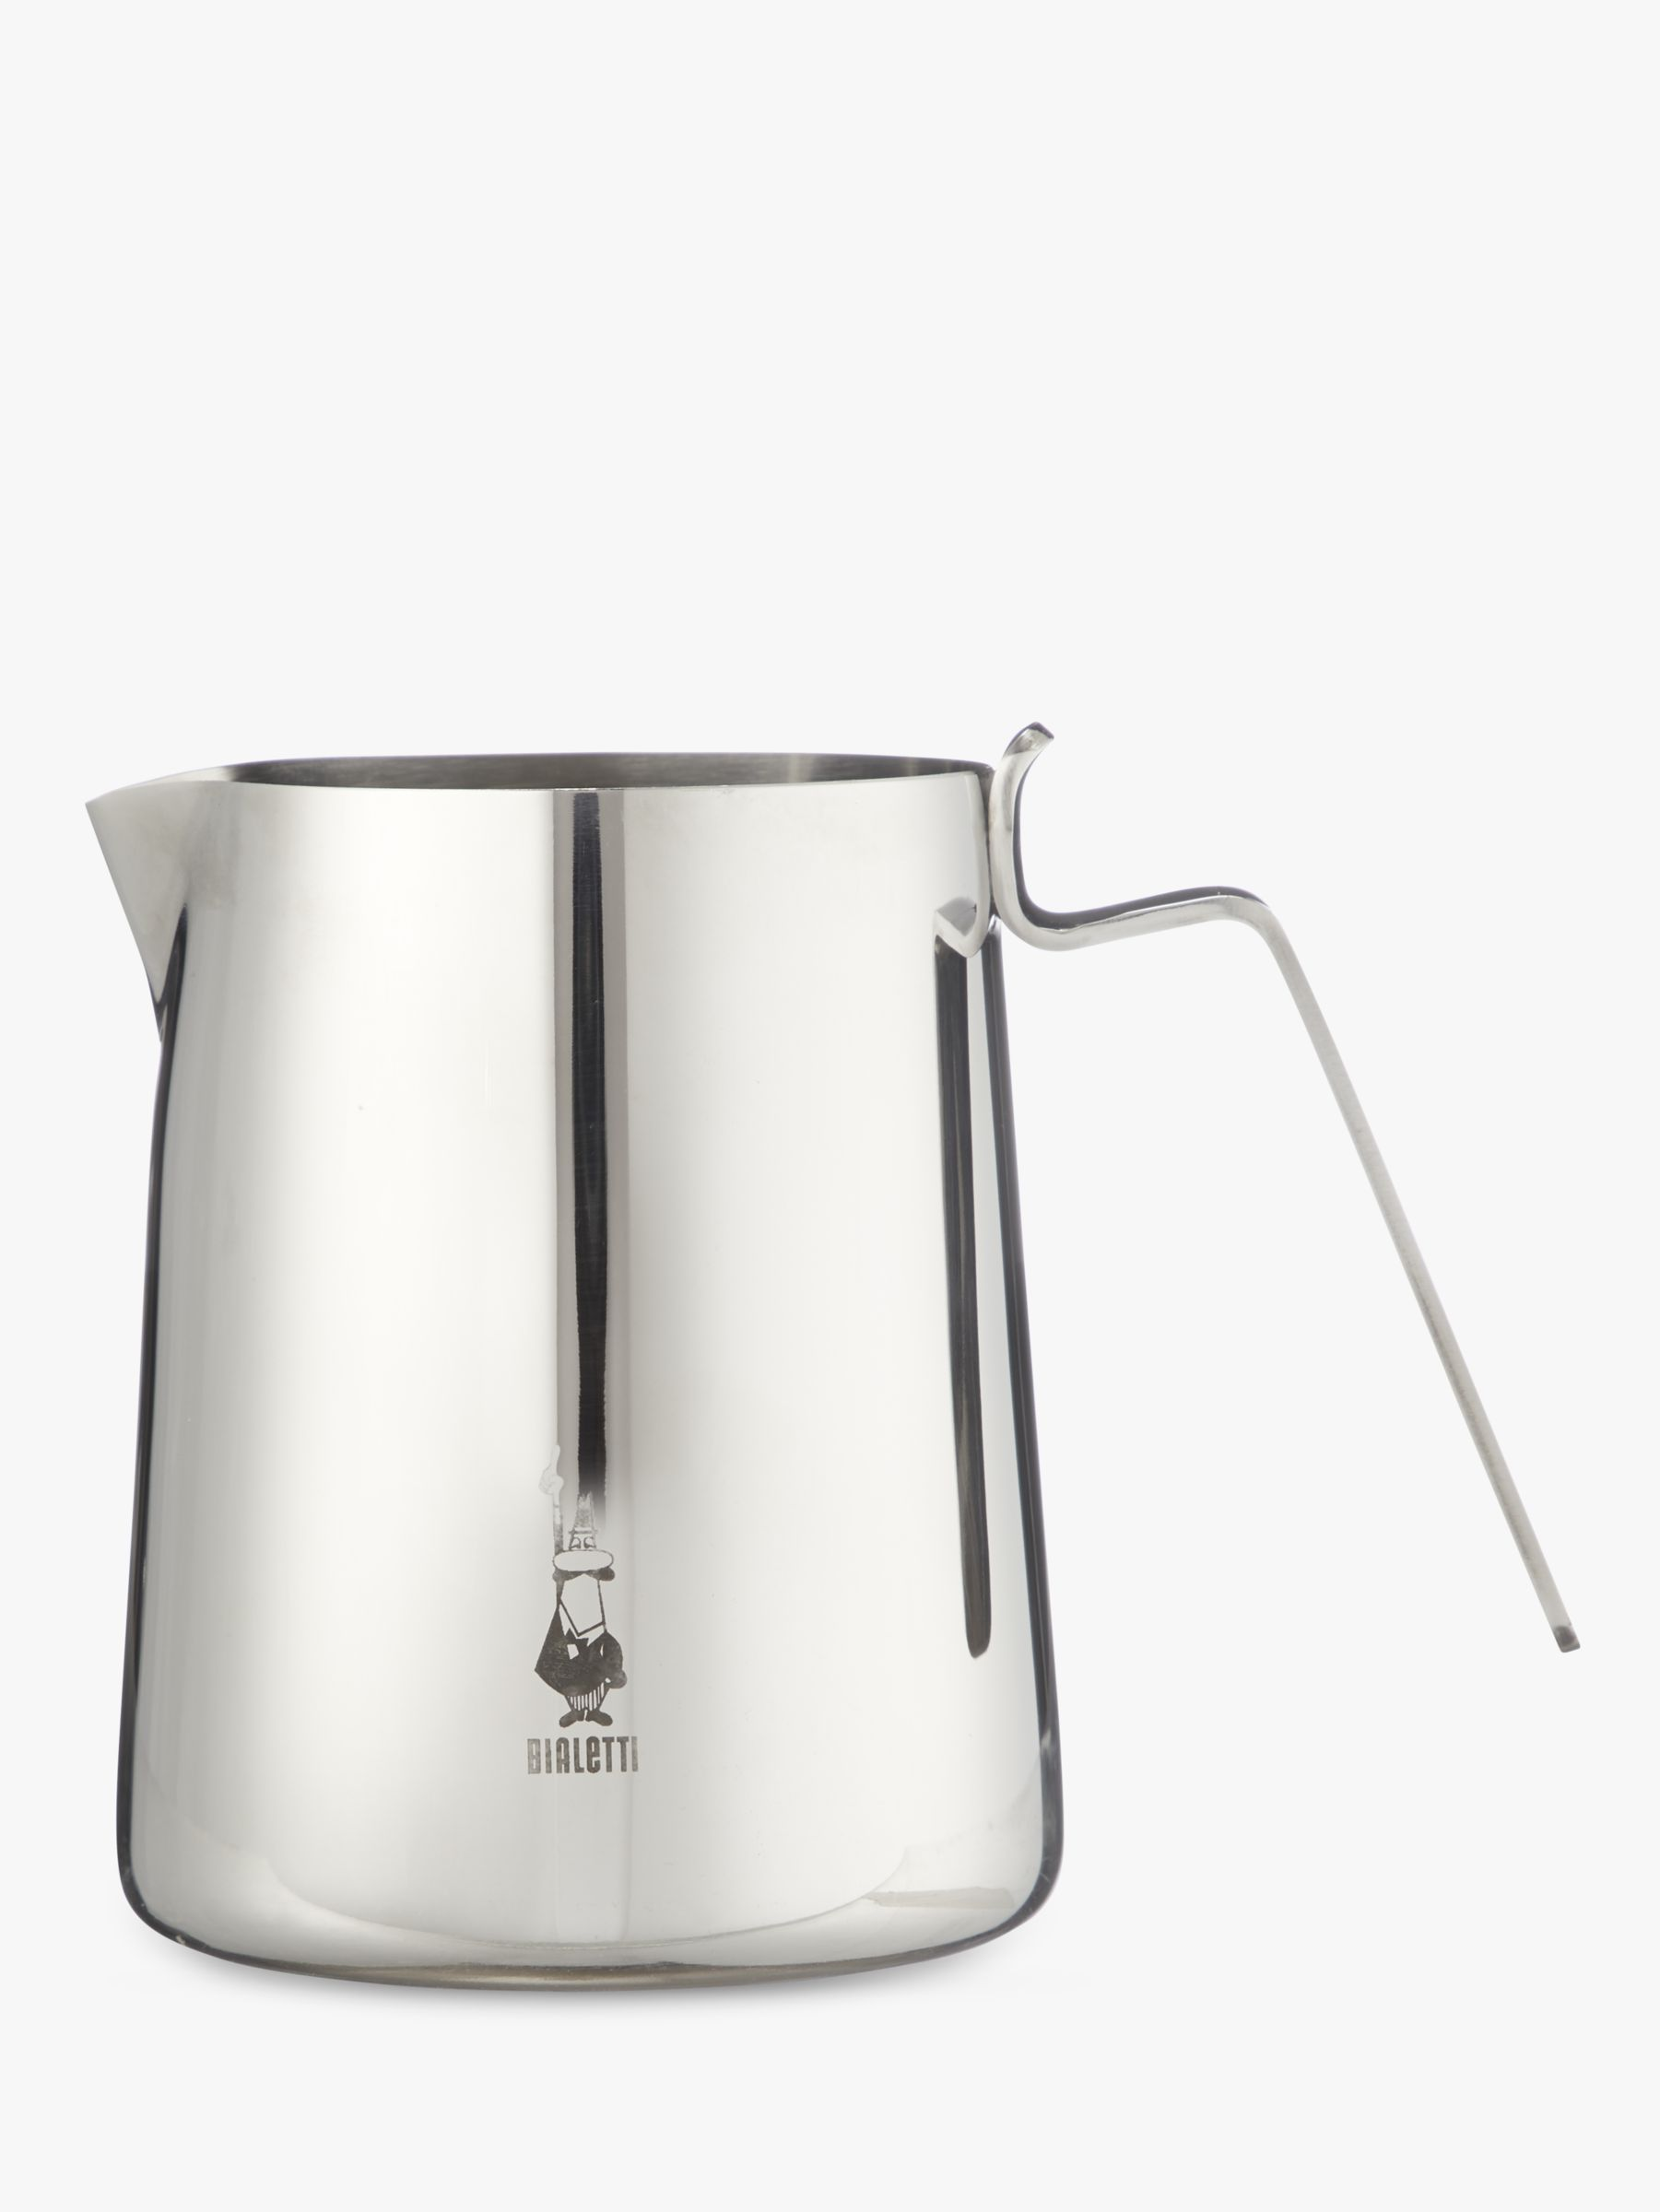 Bialetti Bialetti Stainless Steel Milk Froth Pitcher, 500ml